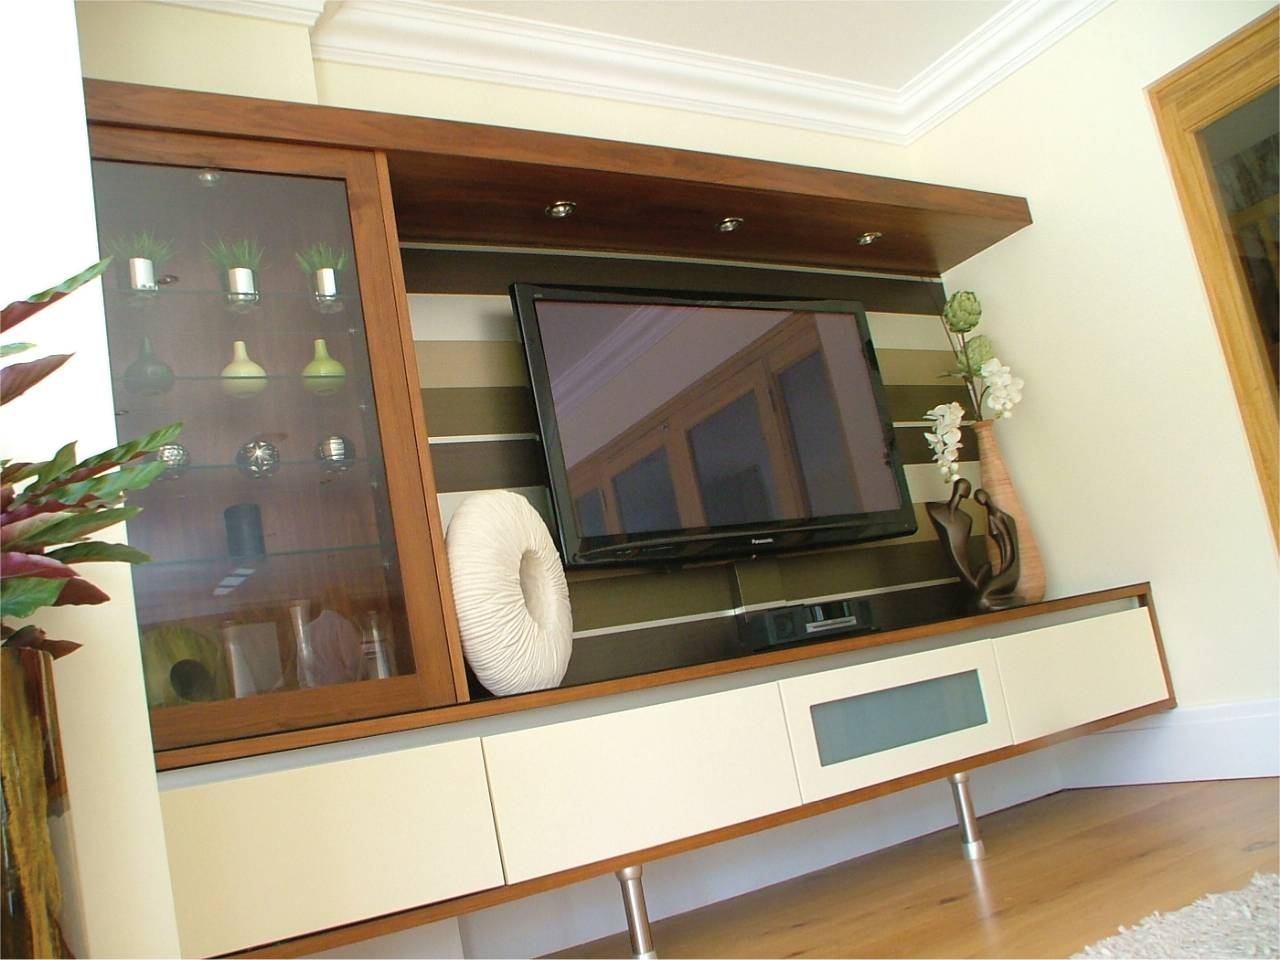 Bespoke Tv Cabinet   Choice Interiors For Bespoke Tv Cabinets (View 13 of 15)